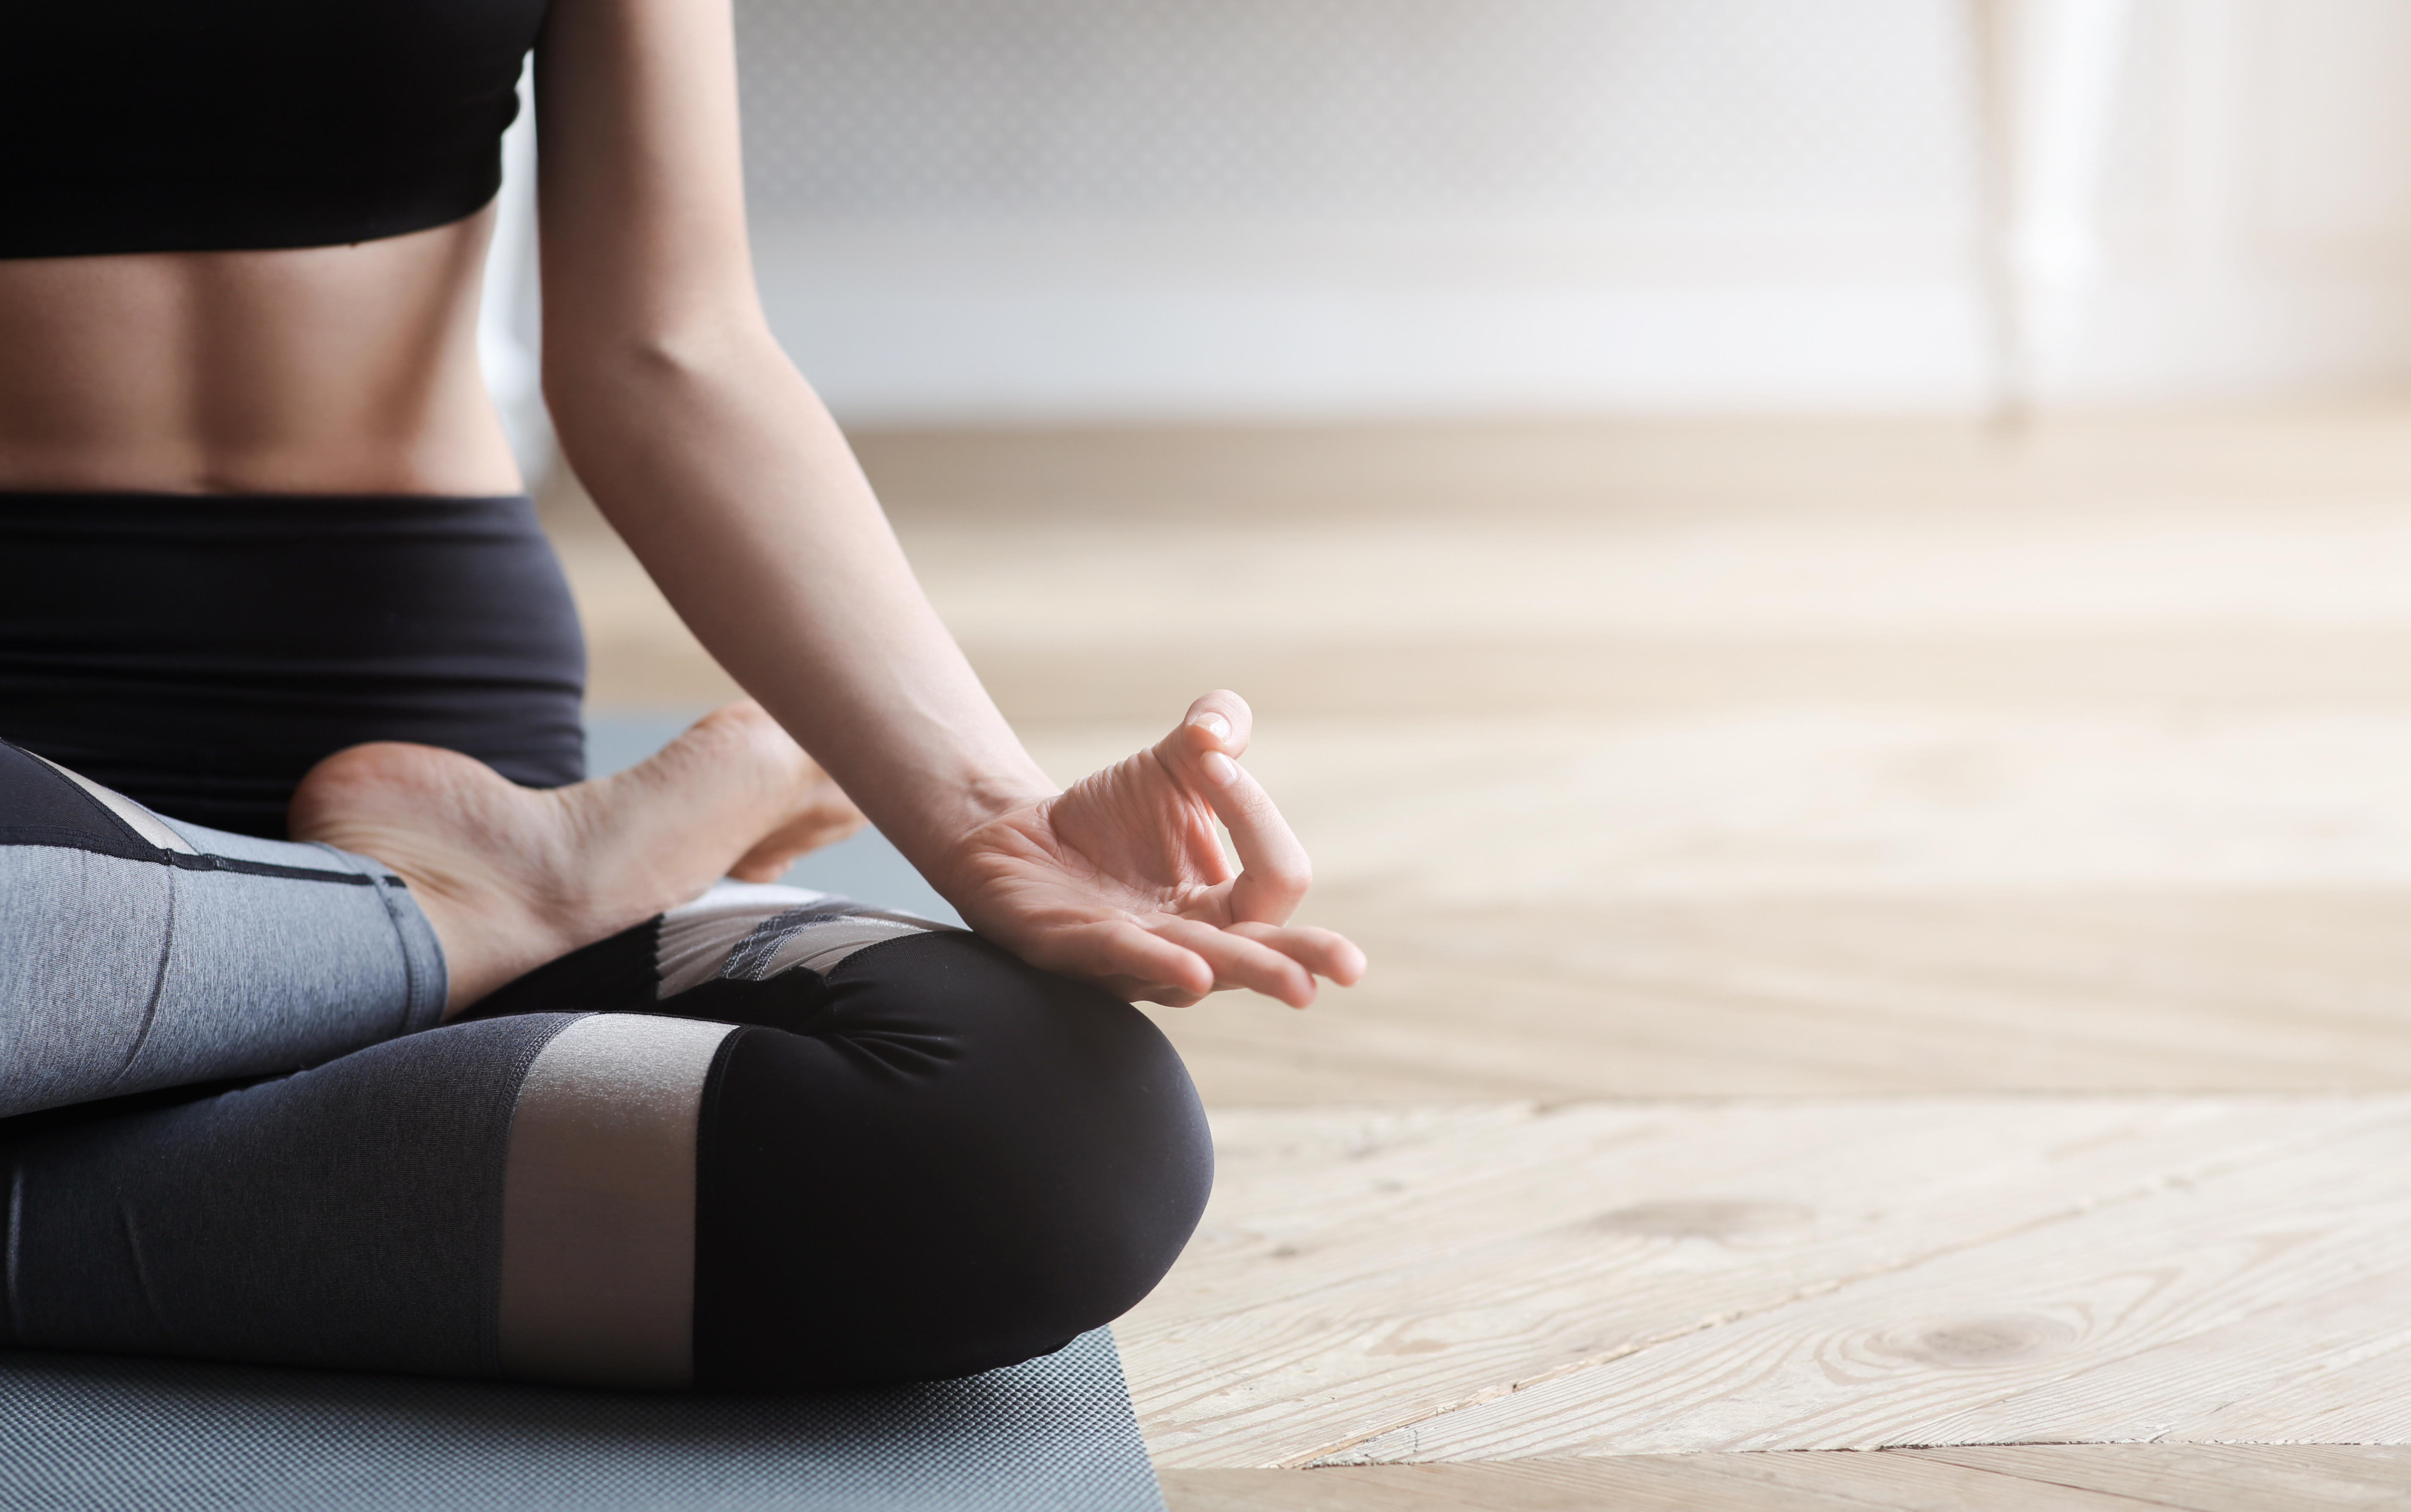 Yoga, meditation, pilates concept. Close up of yoga woman sitting in lotus pose on wooden floor, copy space